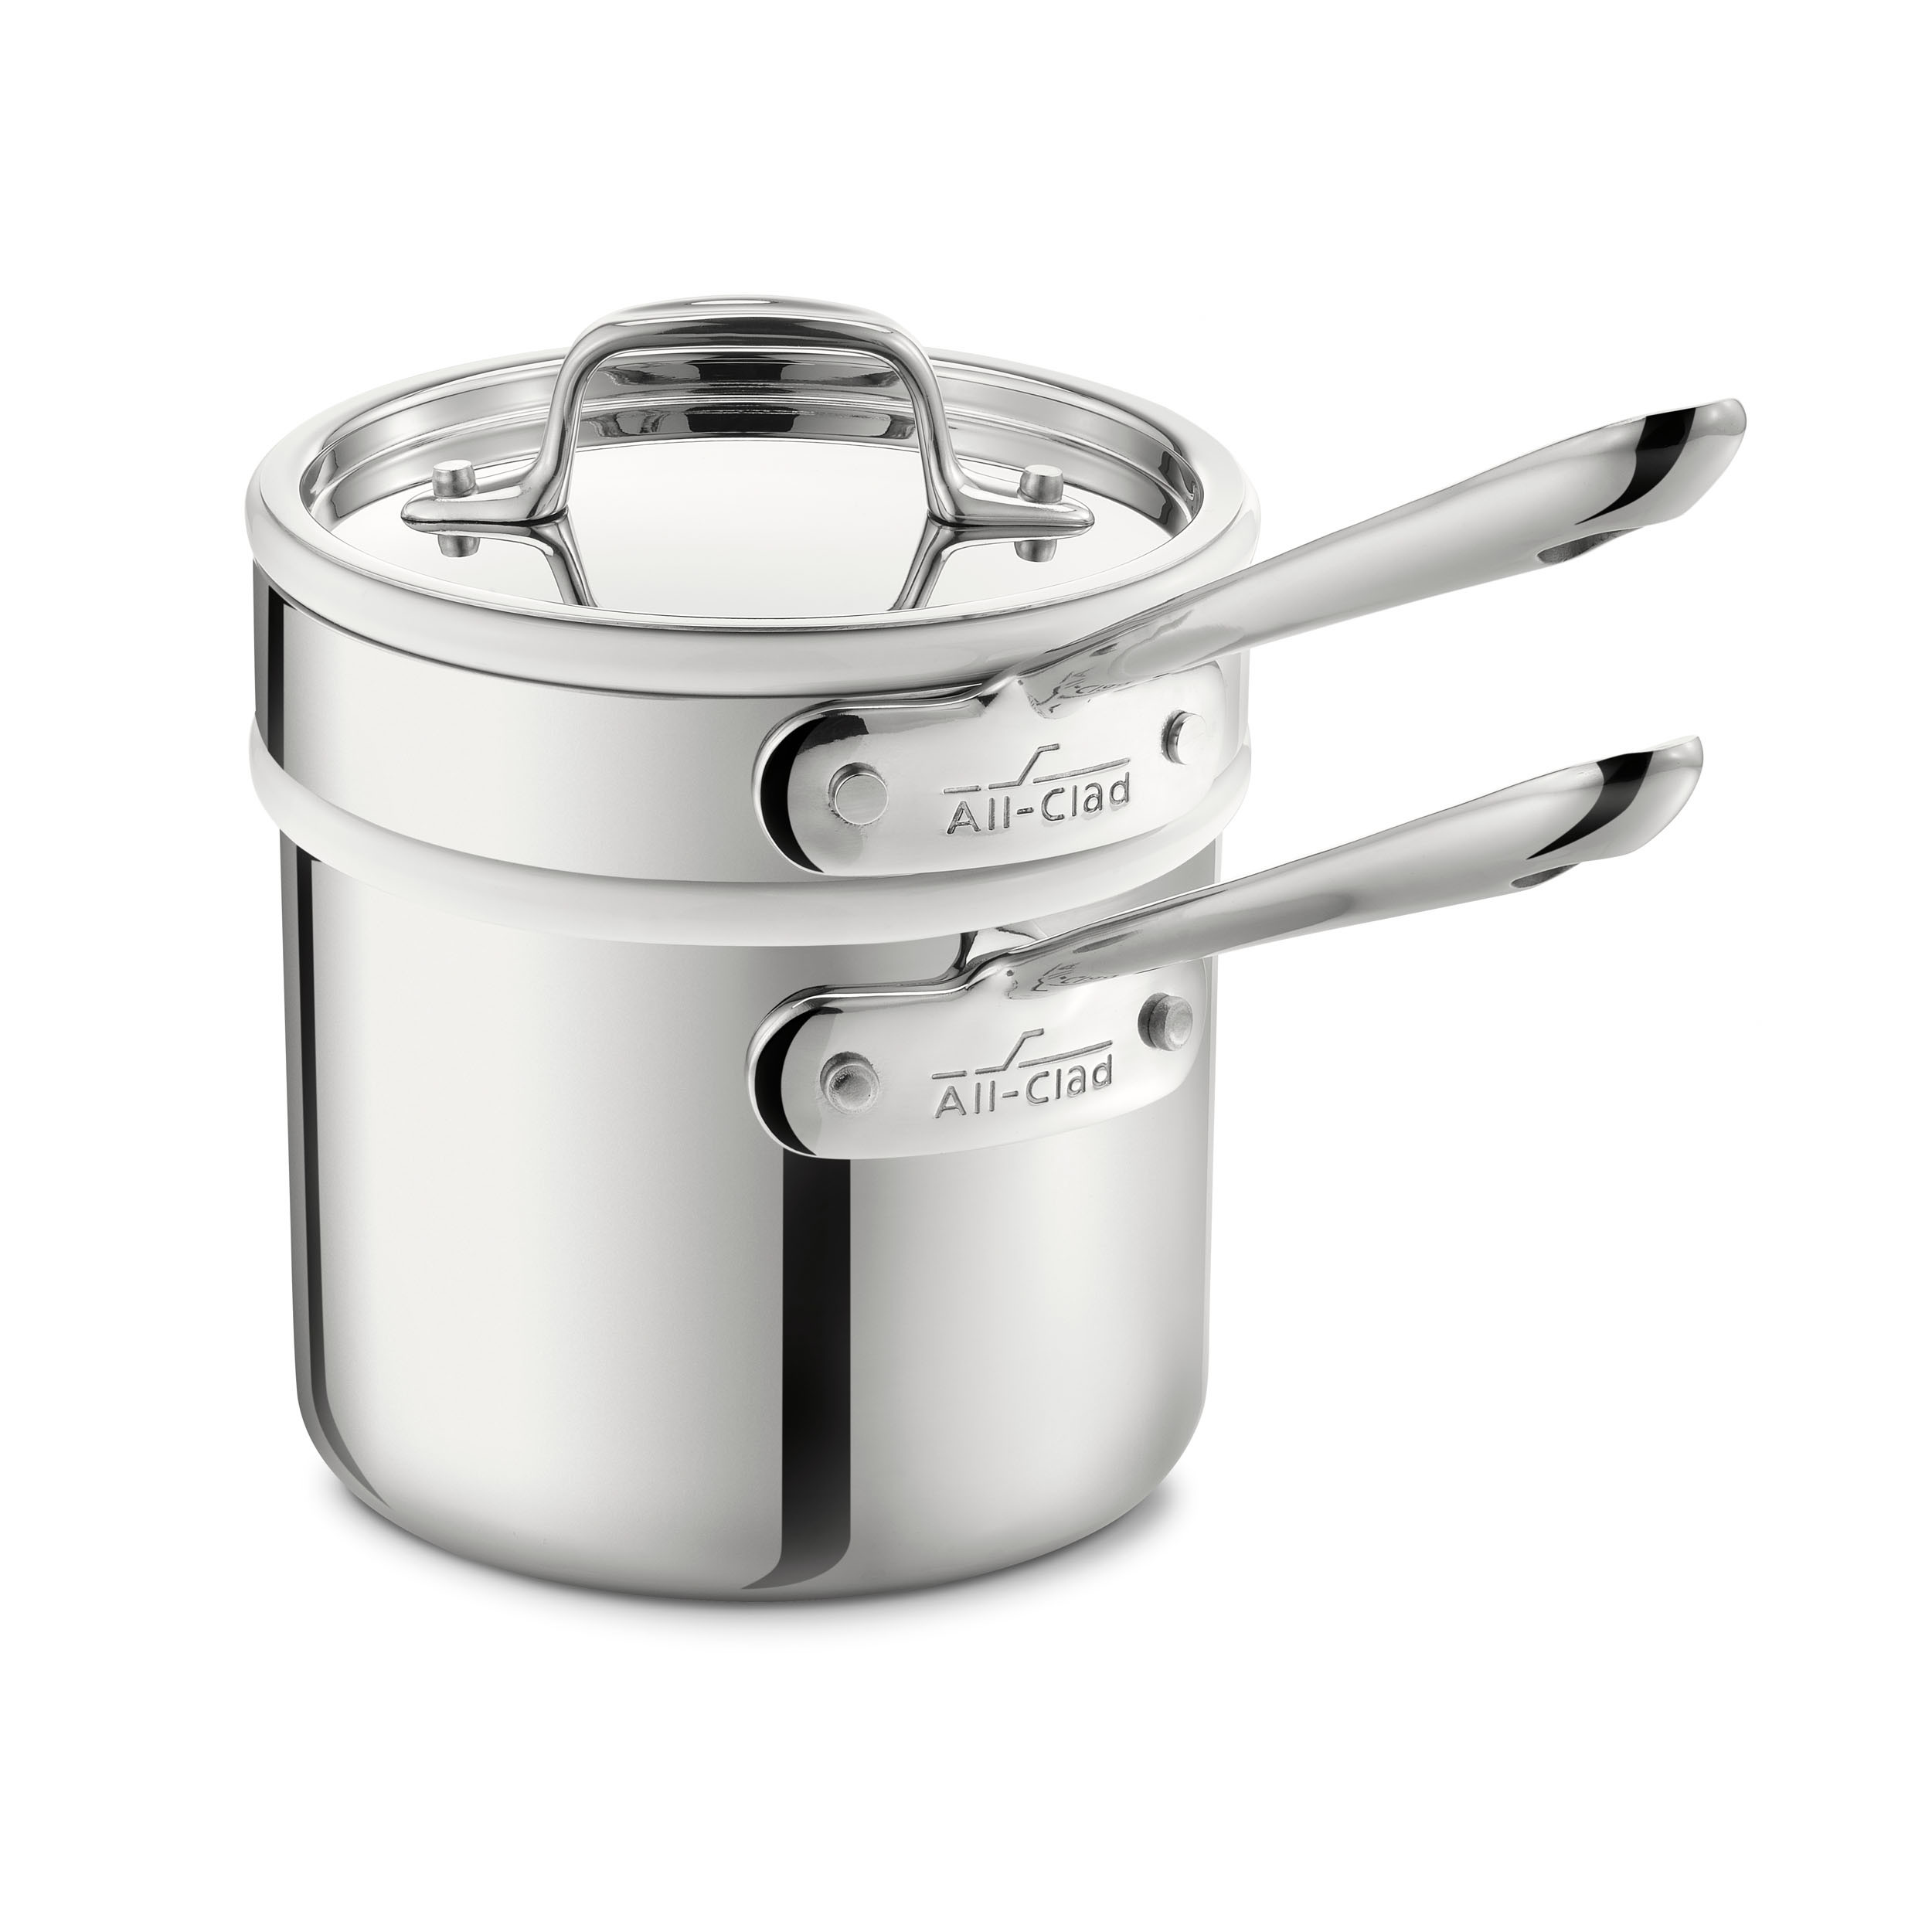 All Clad 42025 Stainless Steel Double Boiler